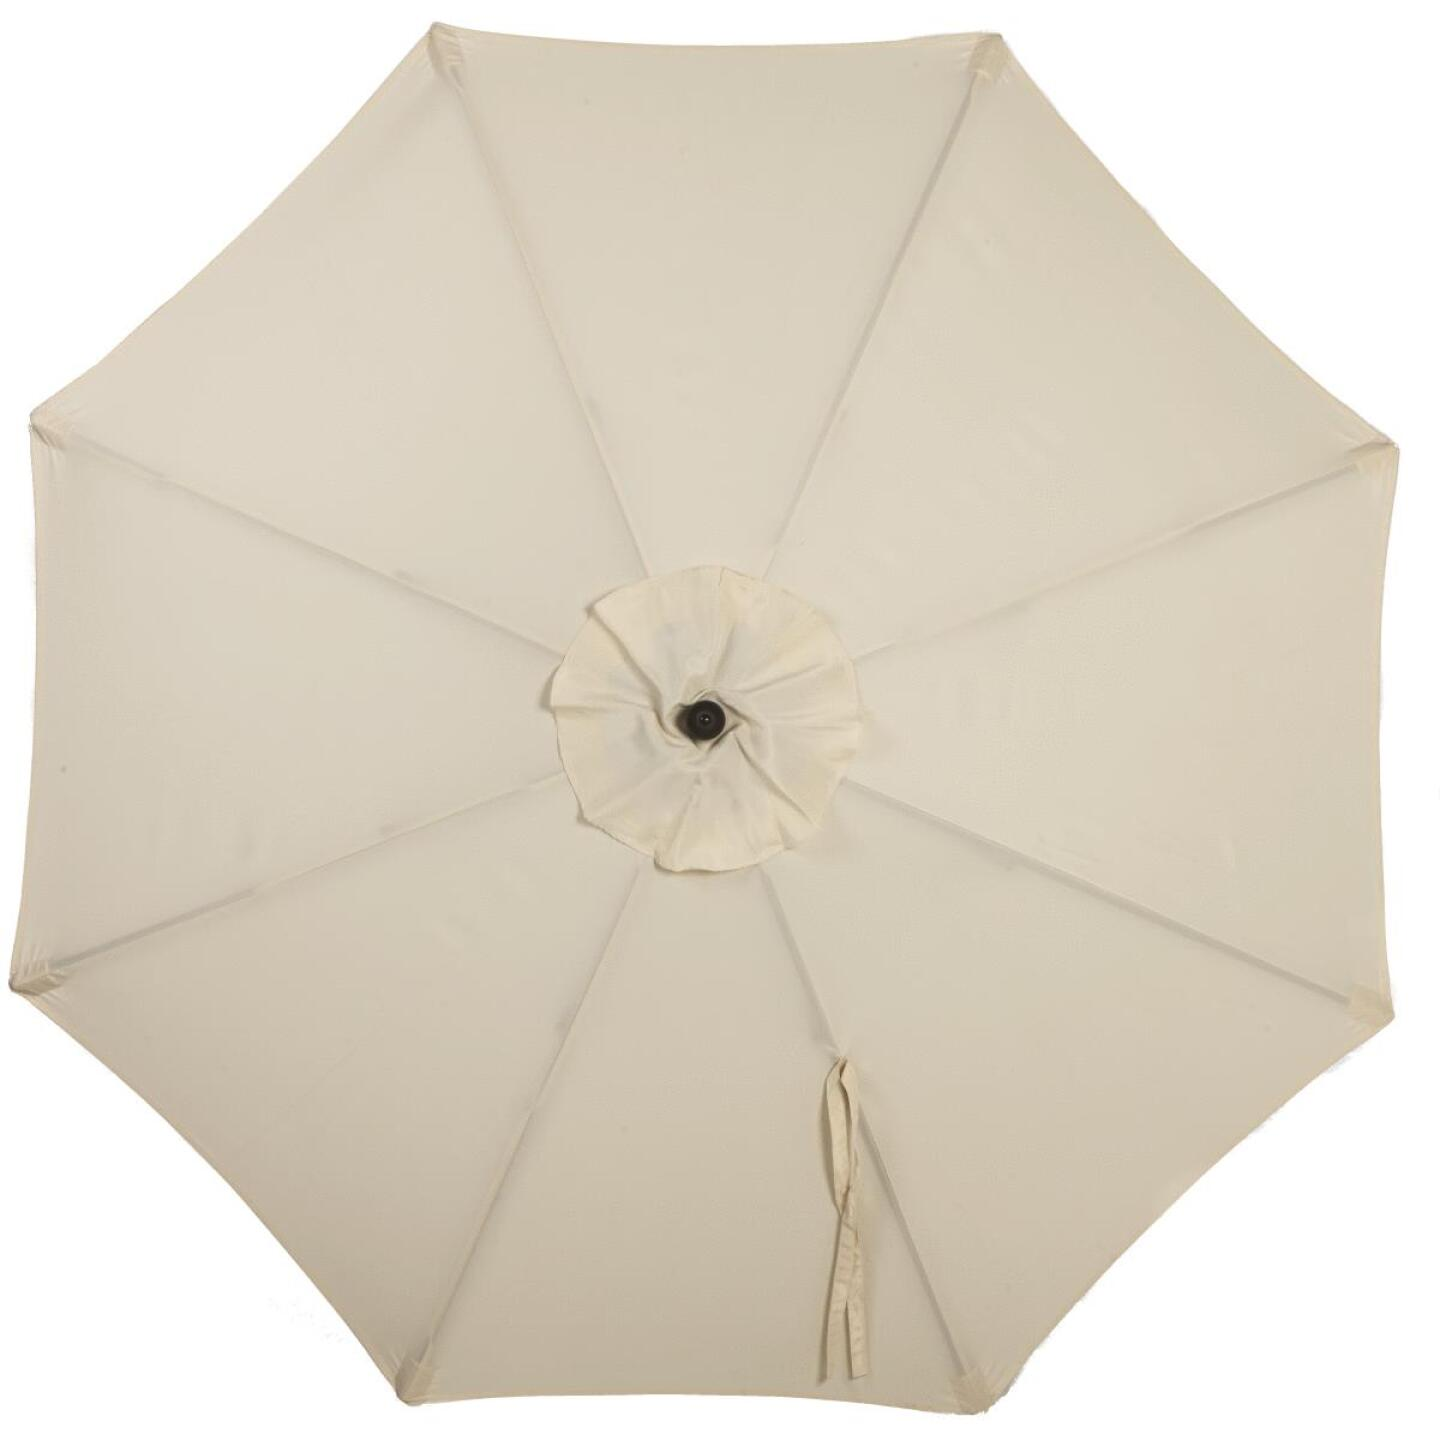 Outdoor Expressions 7.5 Ft. Pulley Cream Market Patio Umbrella with Chrome Plated Hardware Image 3